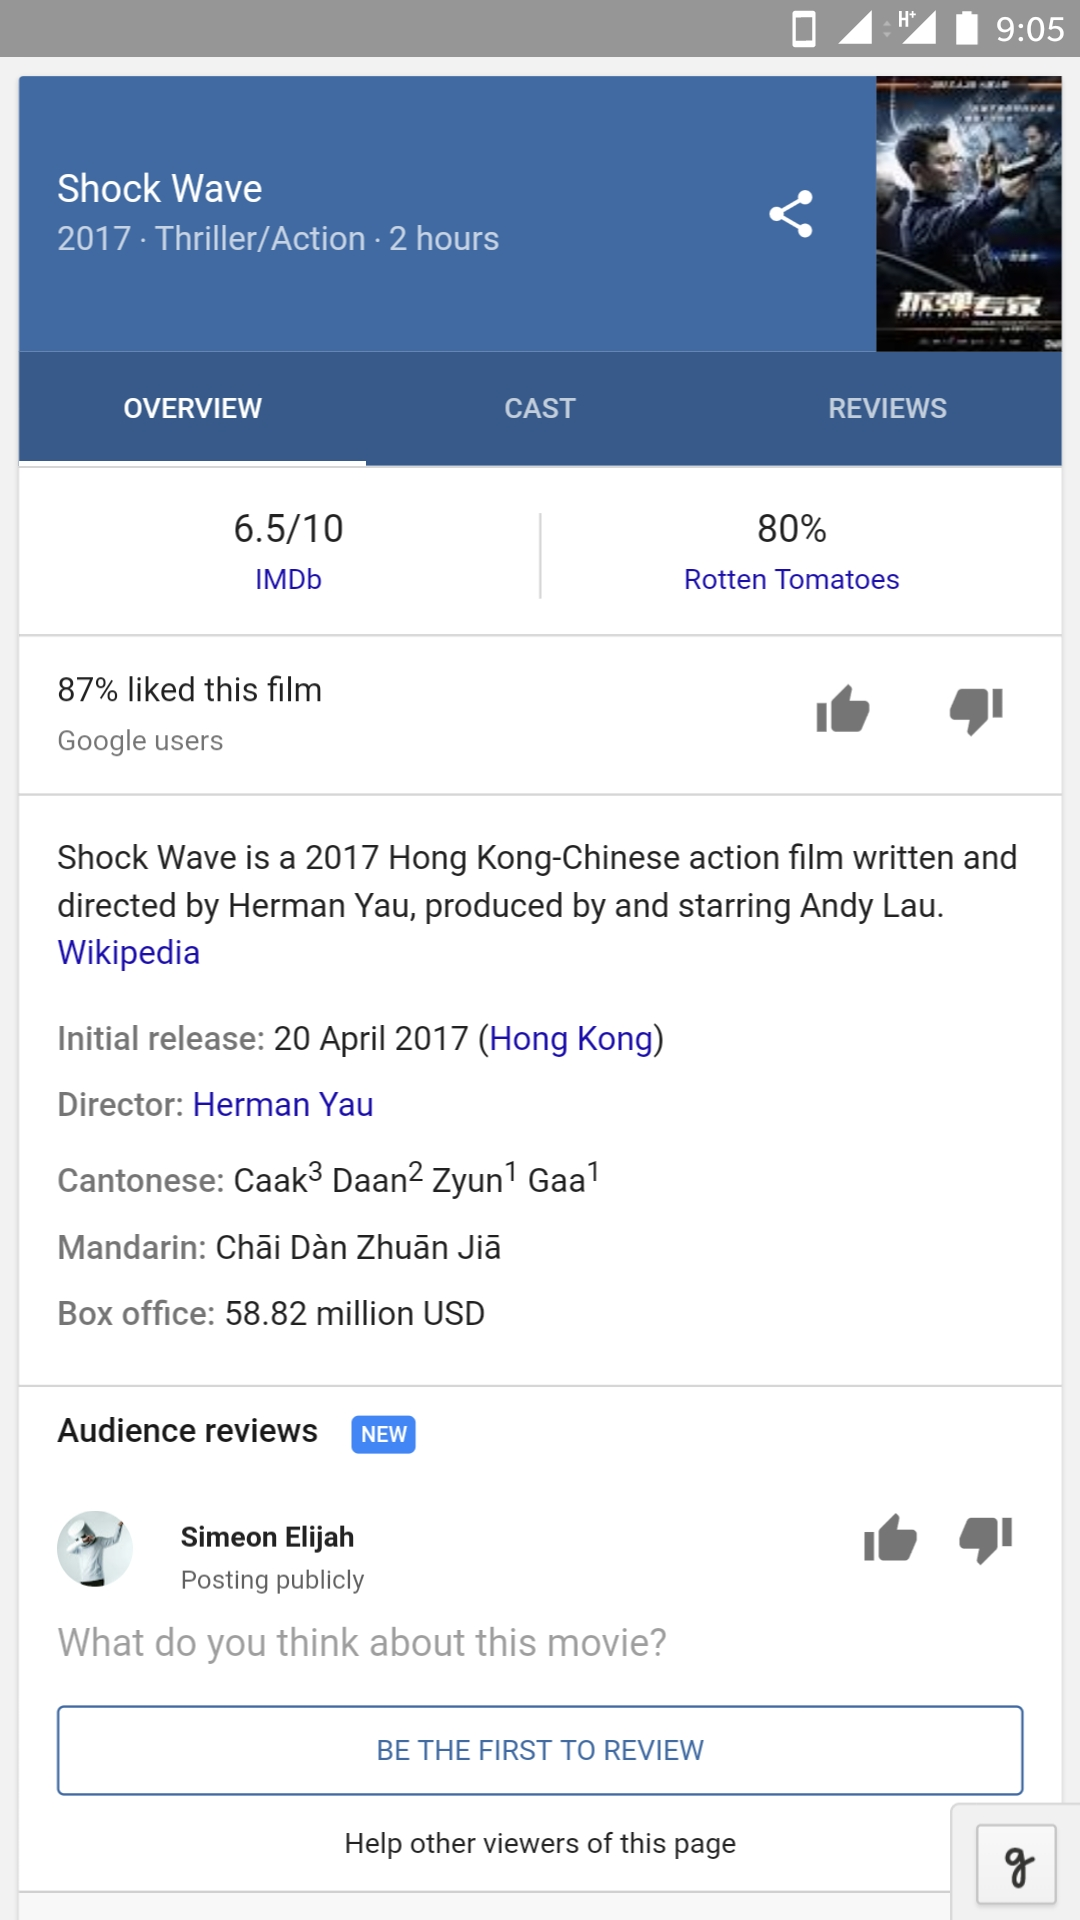 63c979fc147 You can type a full review there and submit it so it will show up for  others when they look for the movie.